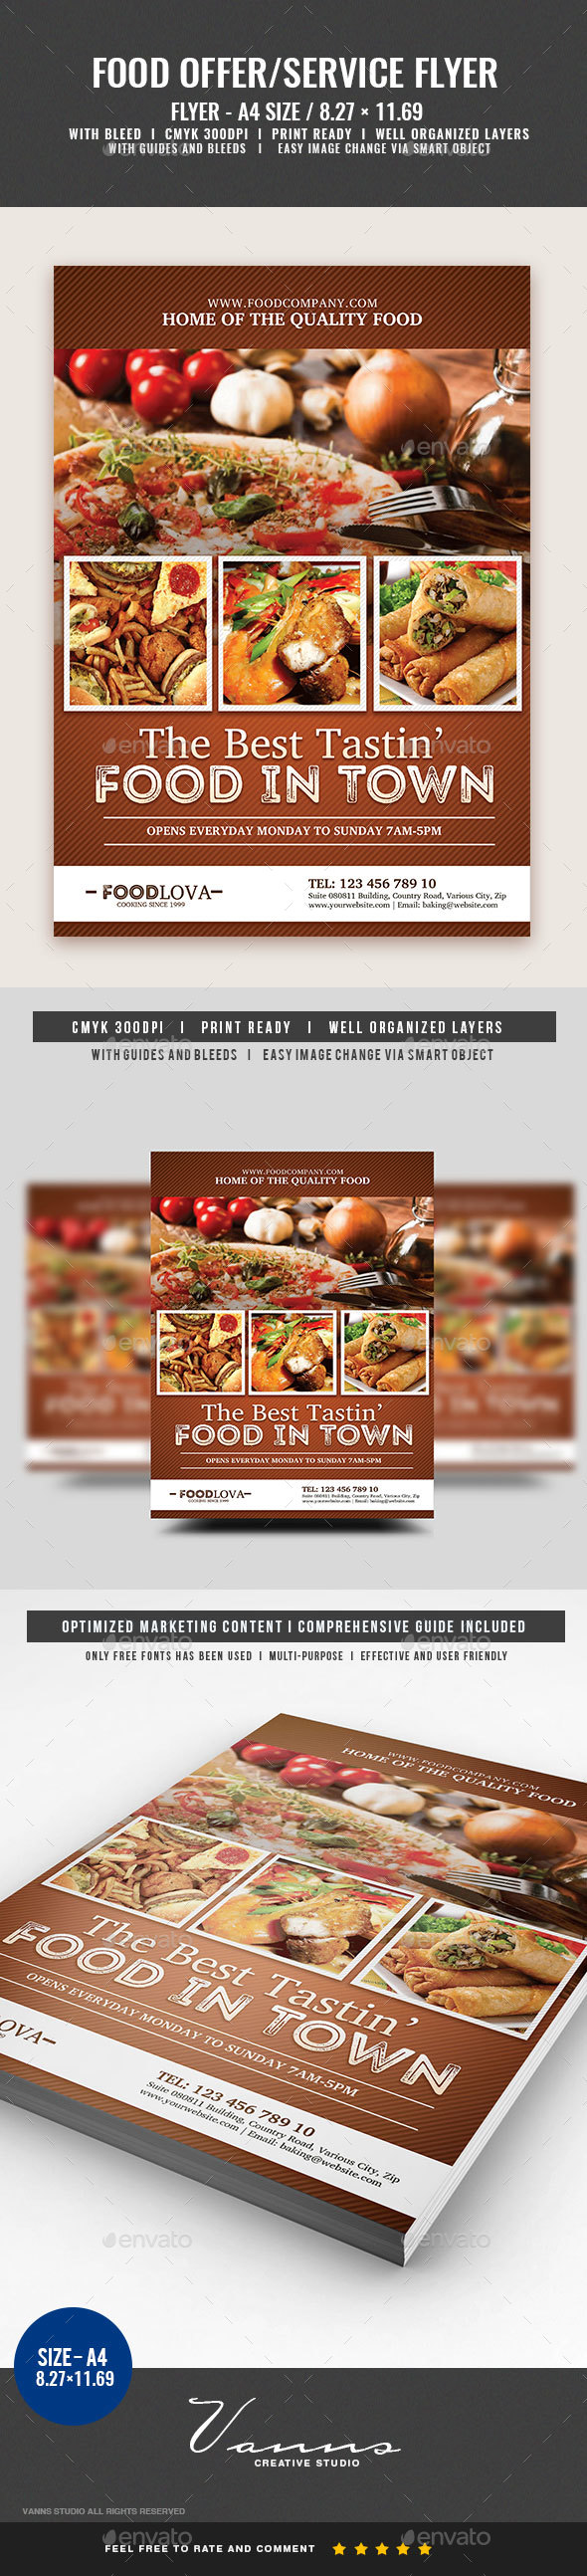 Food Services Flyer Template